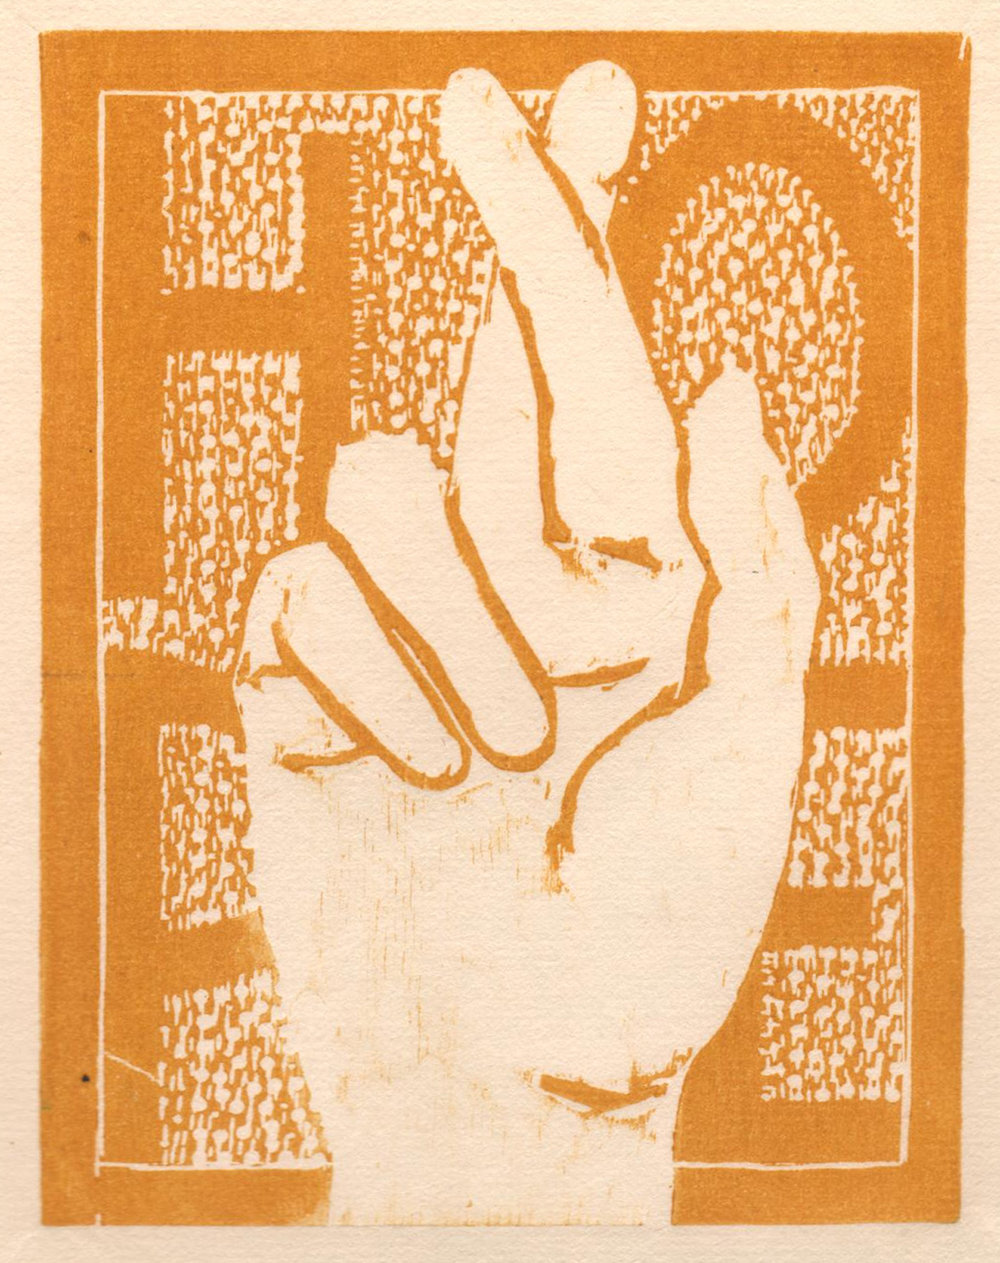 "'Helping Hands, Hope', woodcut, 6.5"" x 5"", $80 unframed"